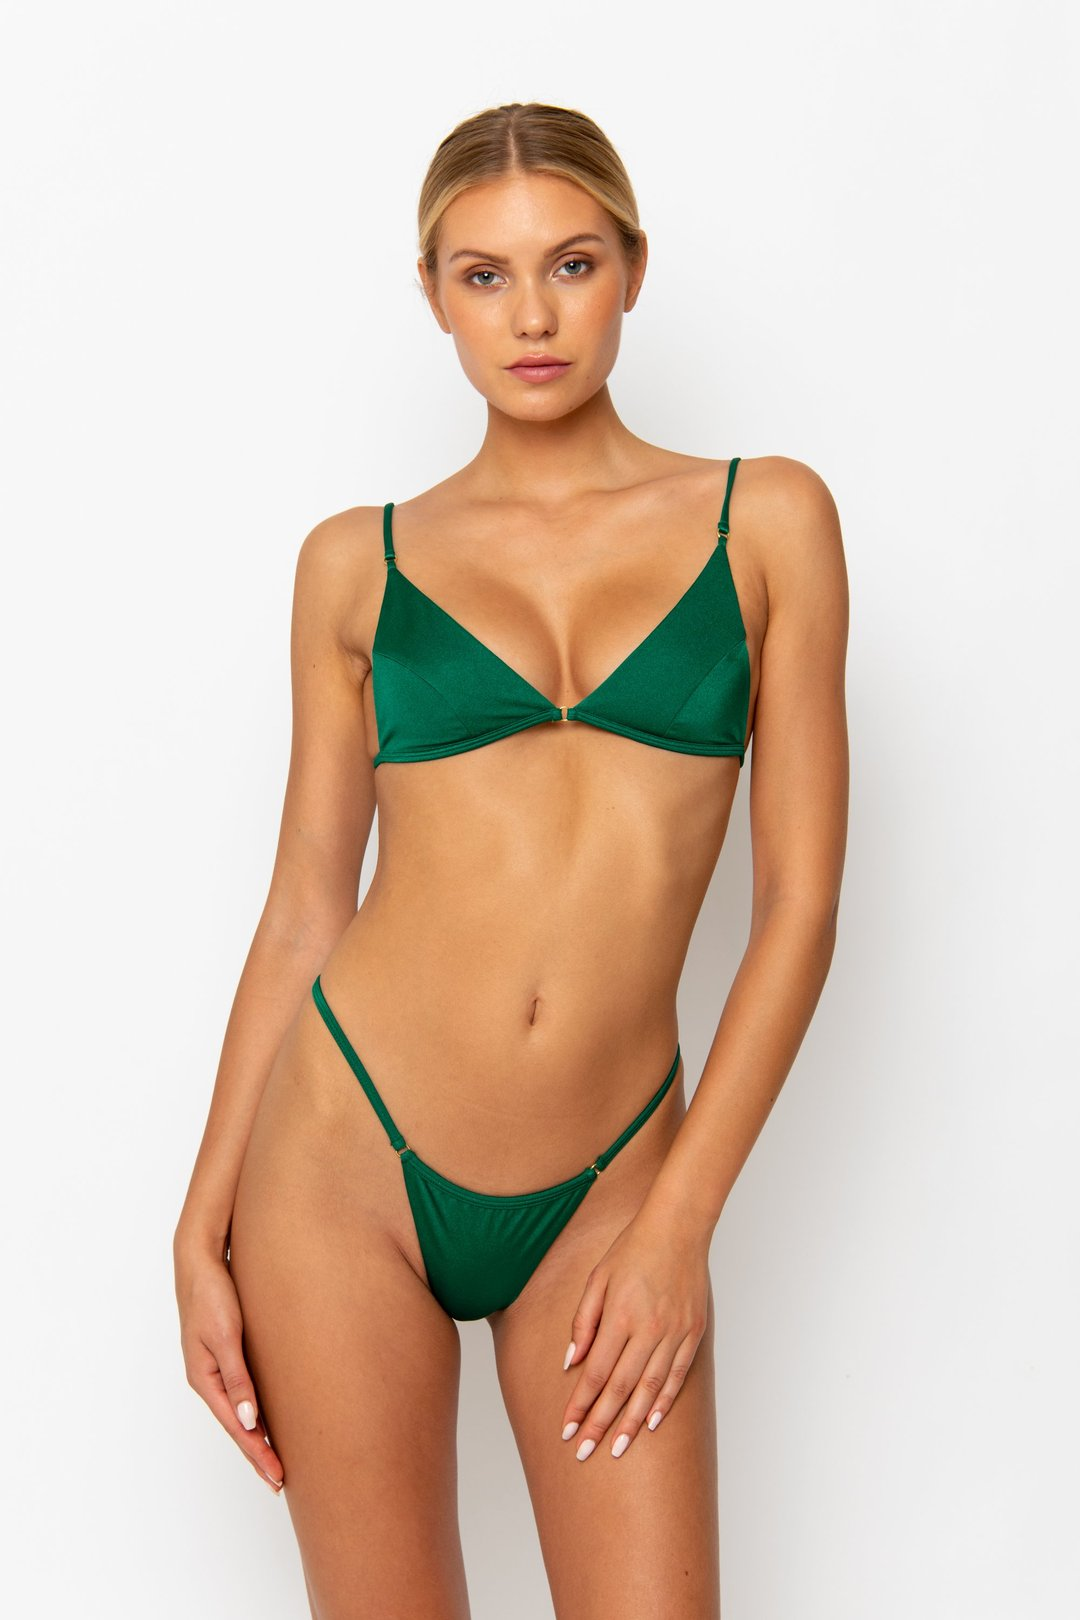 UMA EMERALD - BRALETTE BIKINI TOP by Sommer Swim, available on sommerswim.com.au for $89 Kendall Jenner Top Exact Product